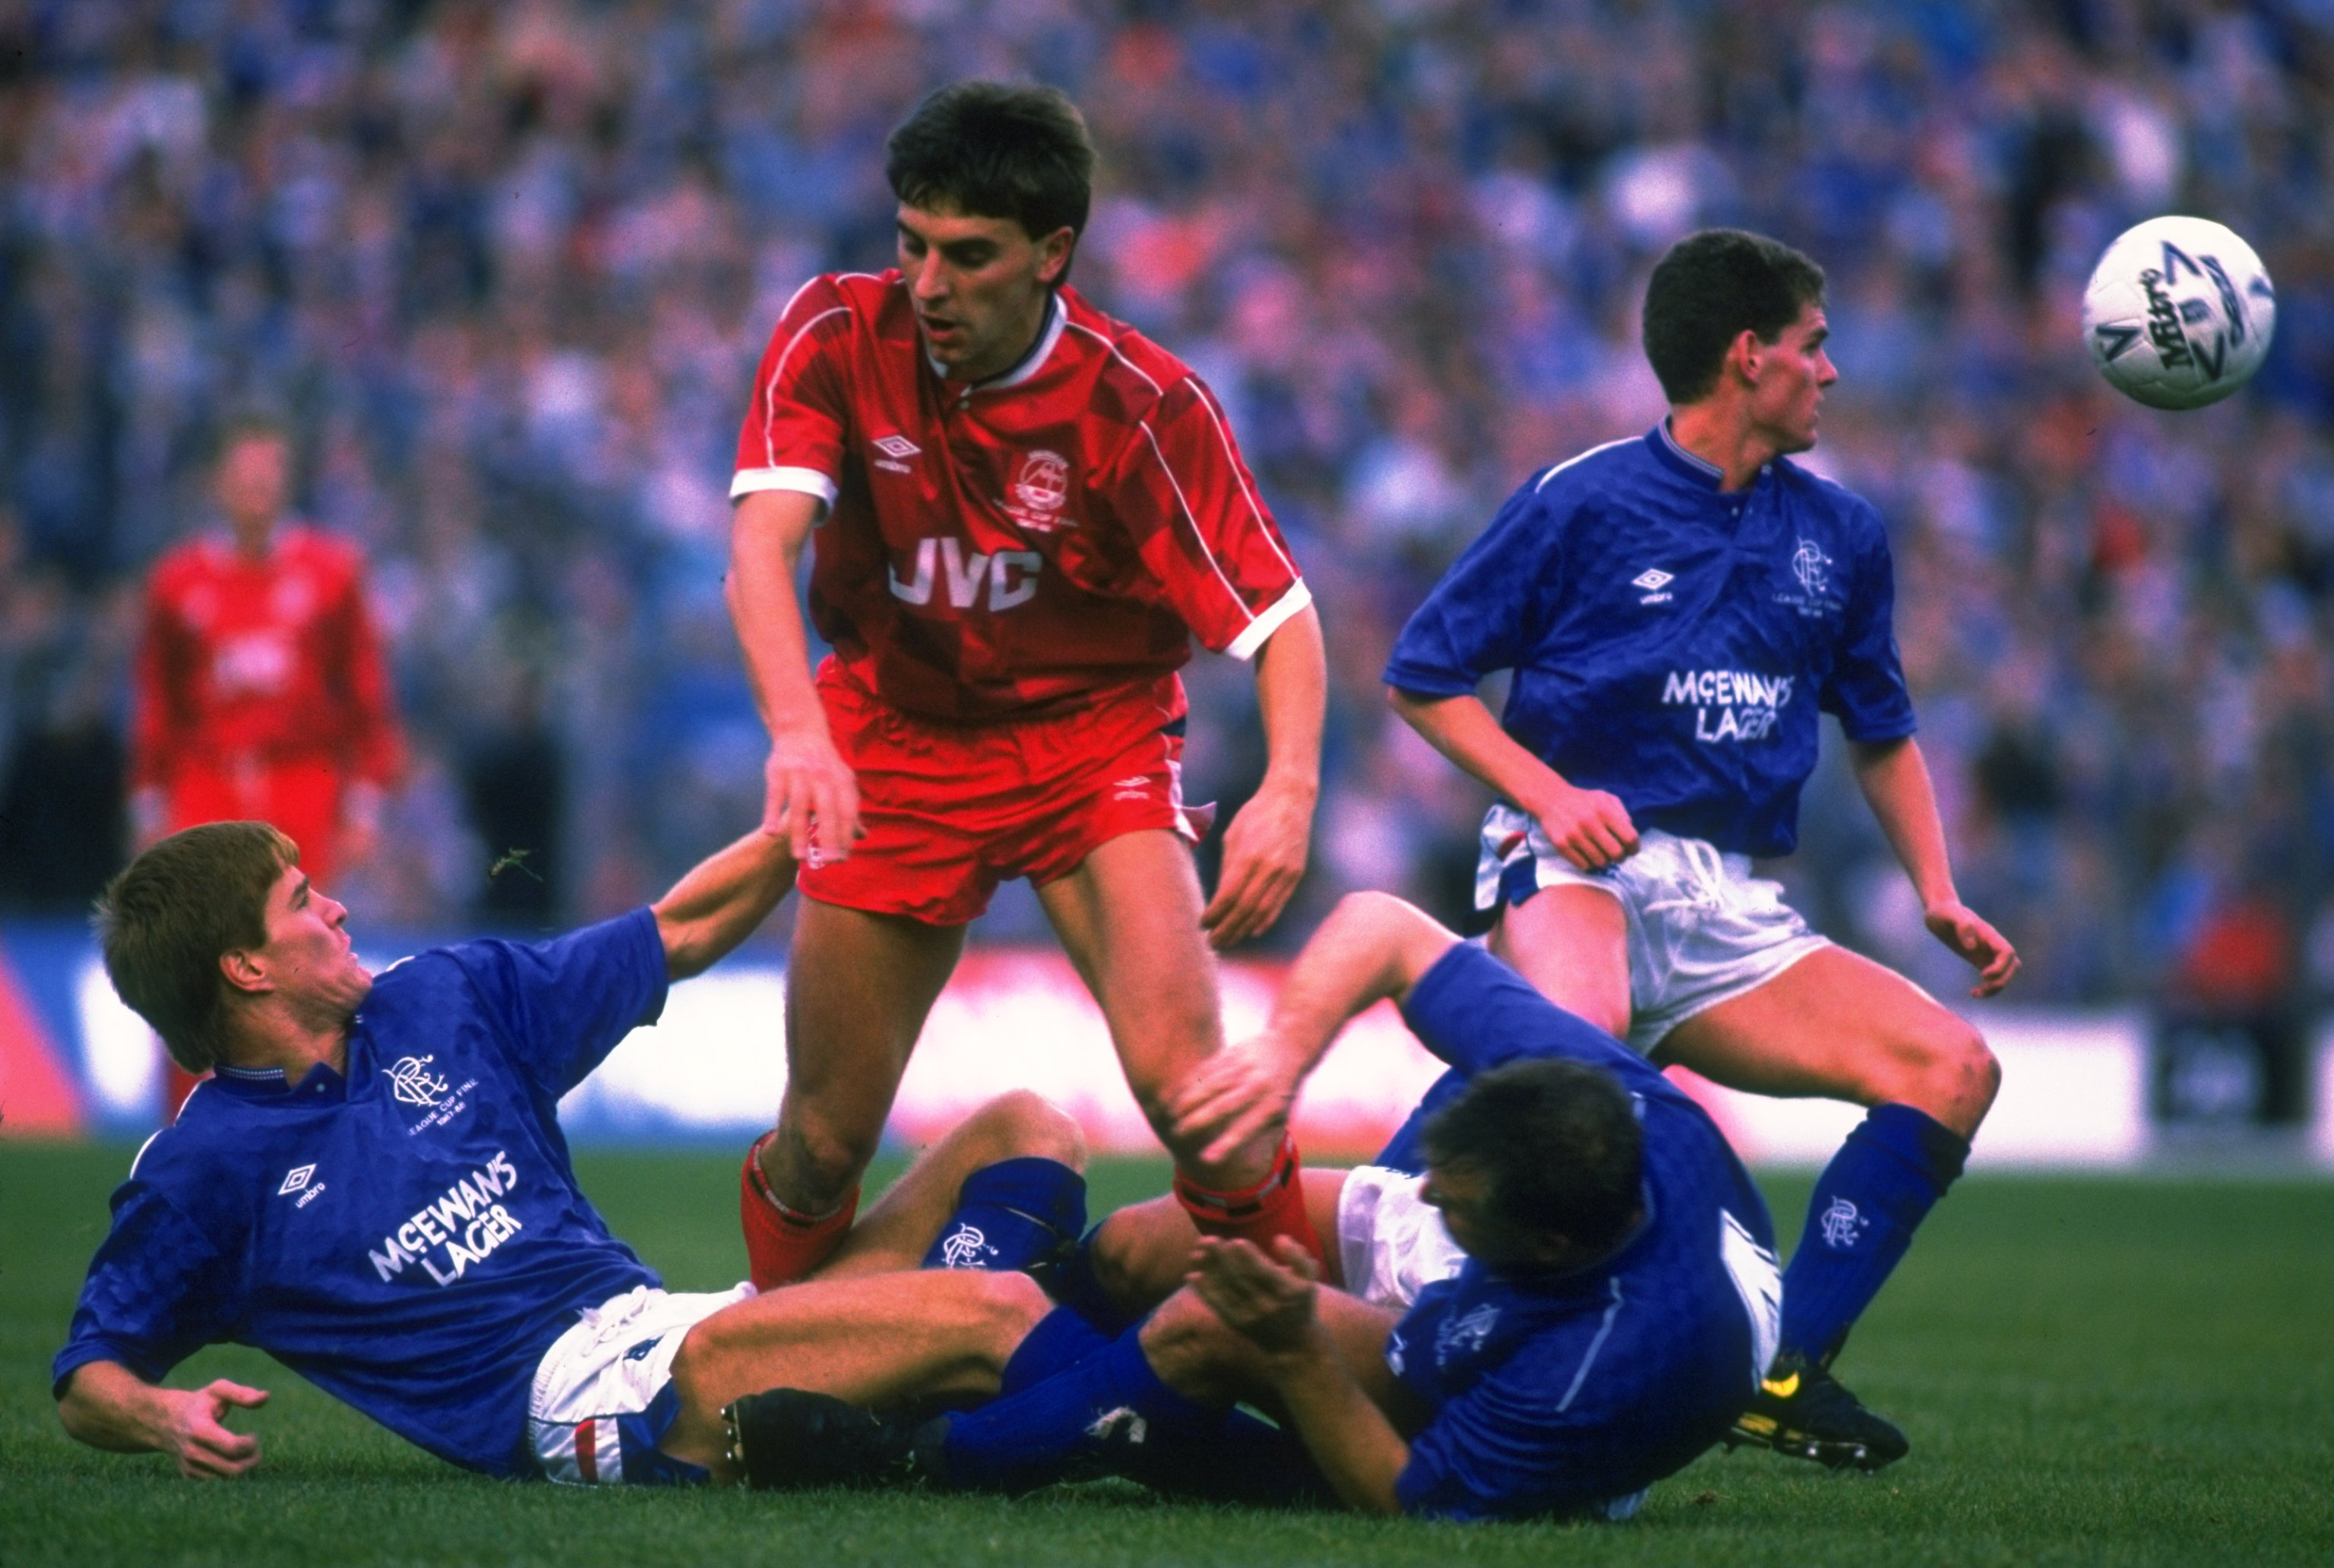 1988:  John Hewitt (centre) of Aberdeen helps up Richard Gough (bottom left) of Rangers while Graham Roberts (bottom right) of Rangers struggles to his feet during the Skol Cup Final match at Hampden Park in Glasgow, Scotland.The match ended in a 3-3 draw